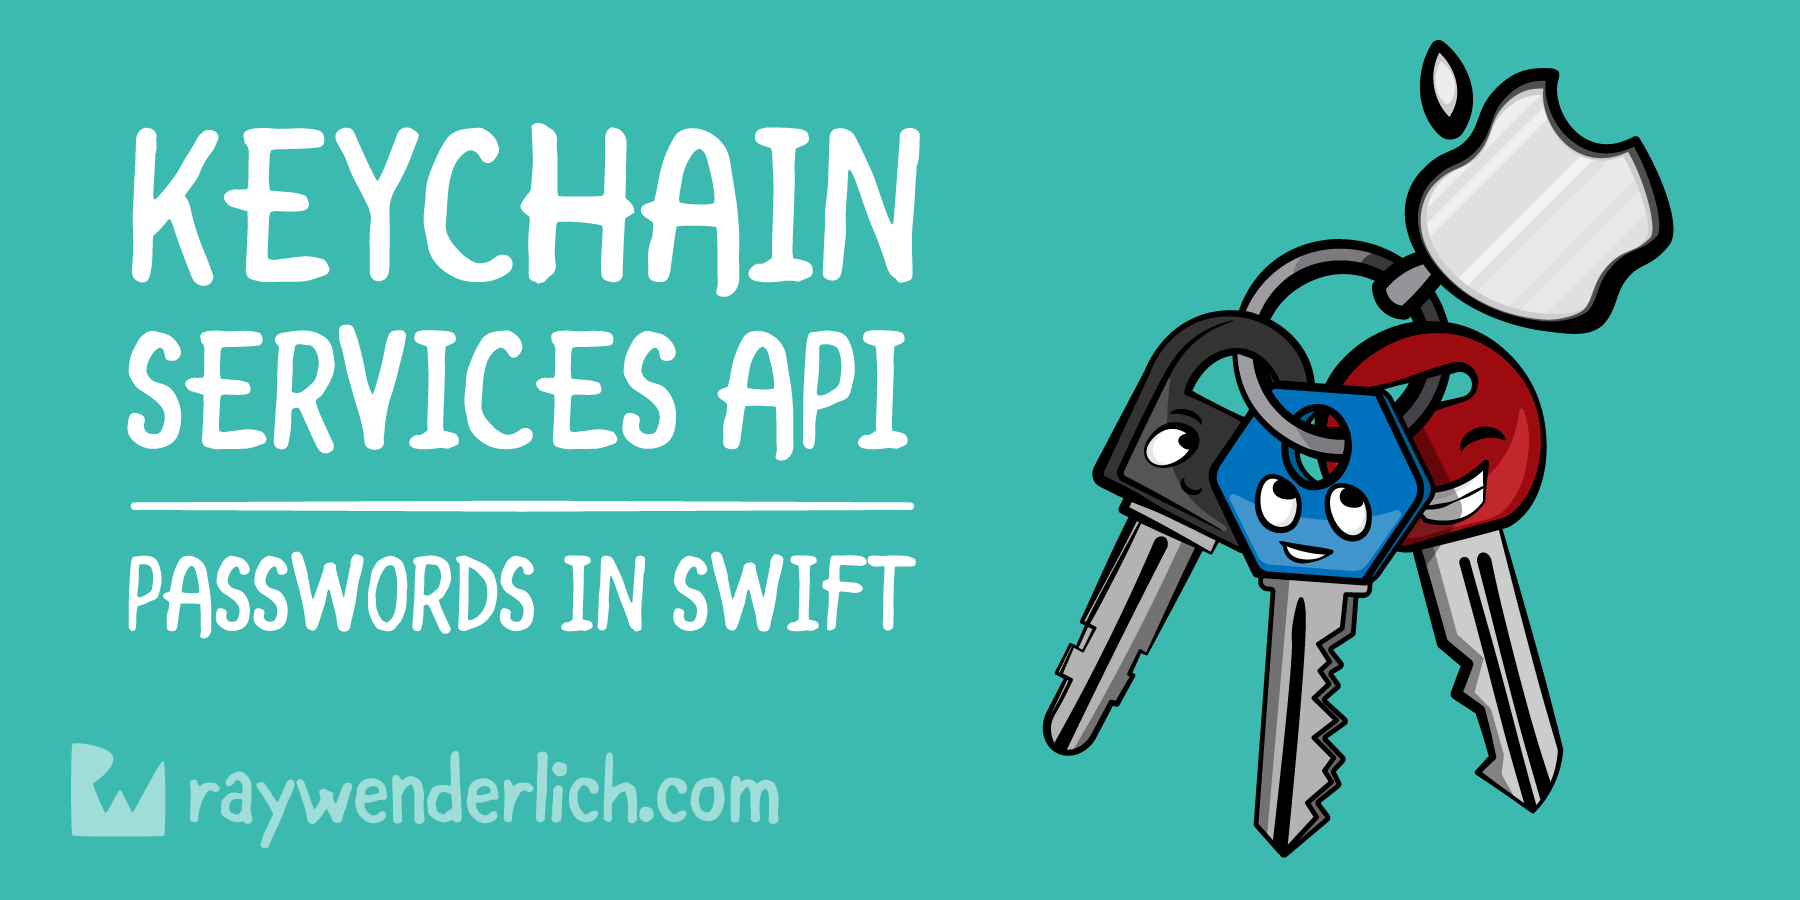 Keychain Services API Tutorial for Passwords in Swift